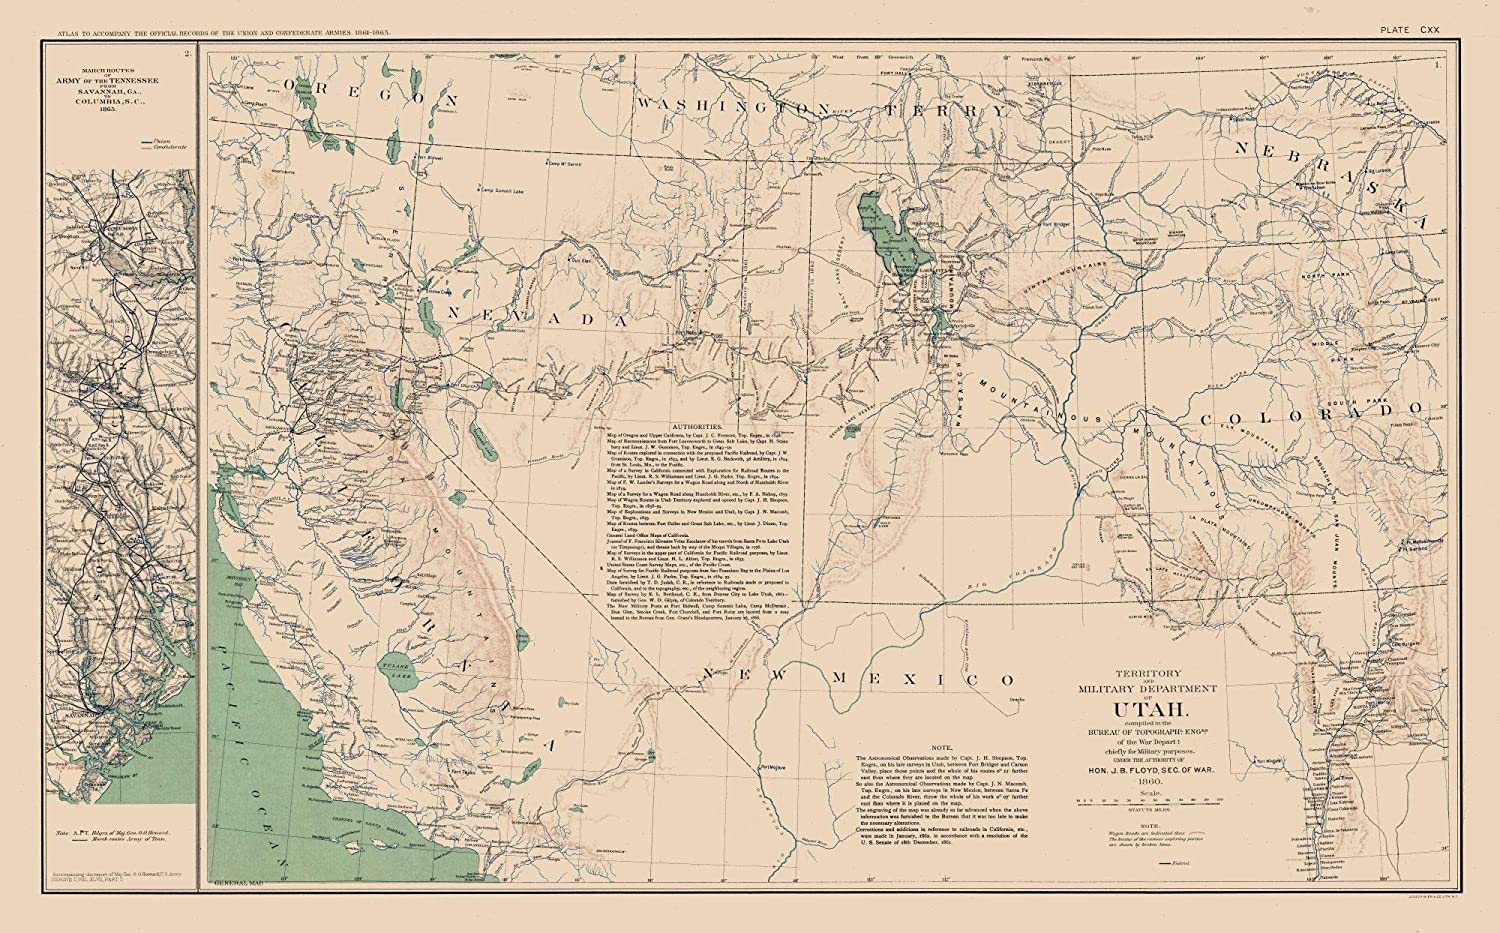 Amazon.com: MAPS OF THE PAST Utah Tennessee Military ...